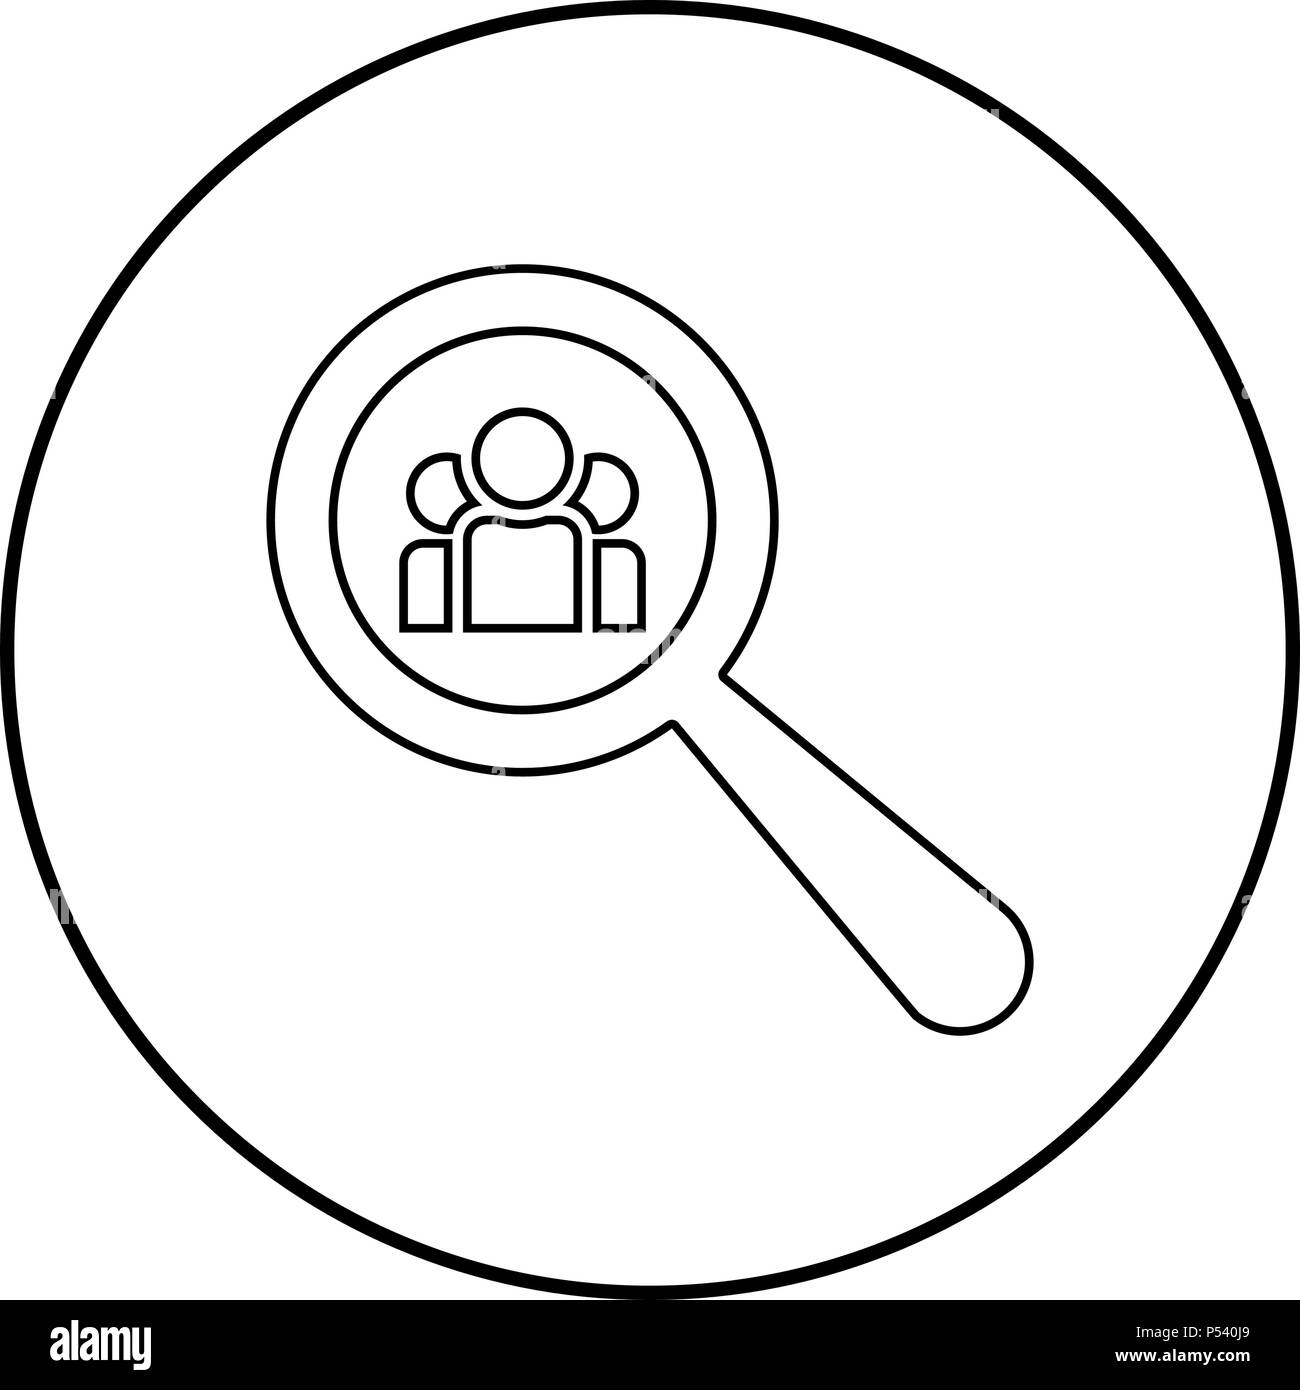 People search icon black color in circle round outline - Stock Vector